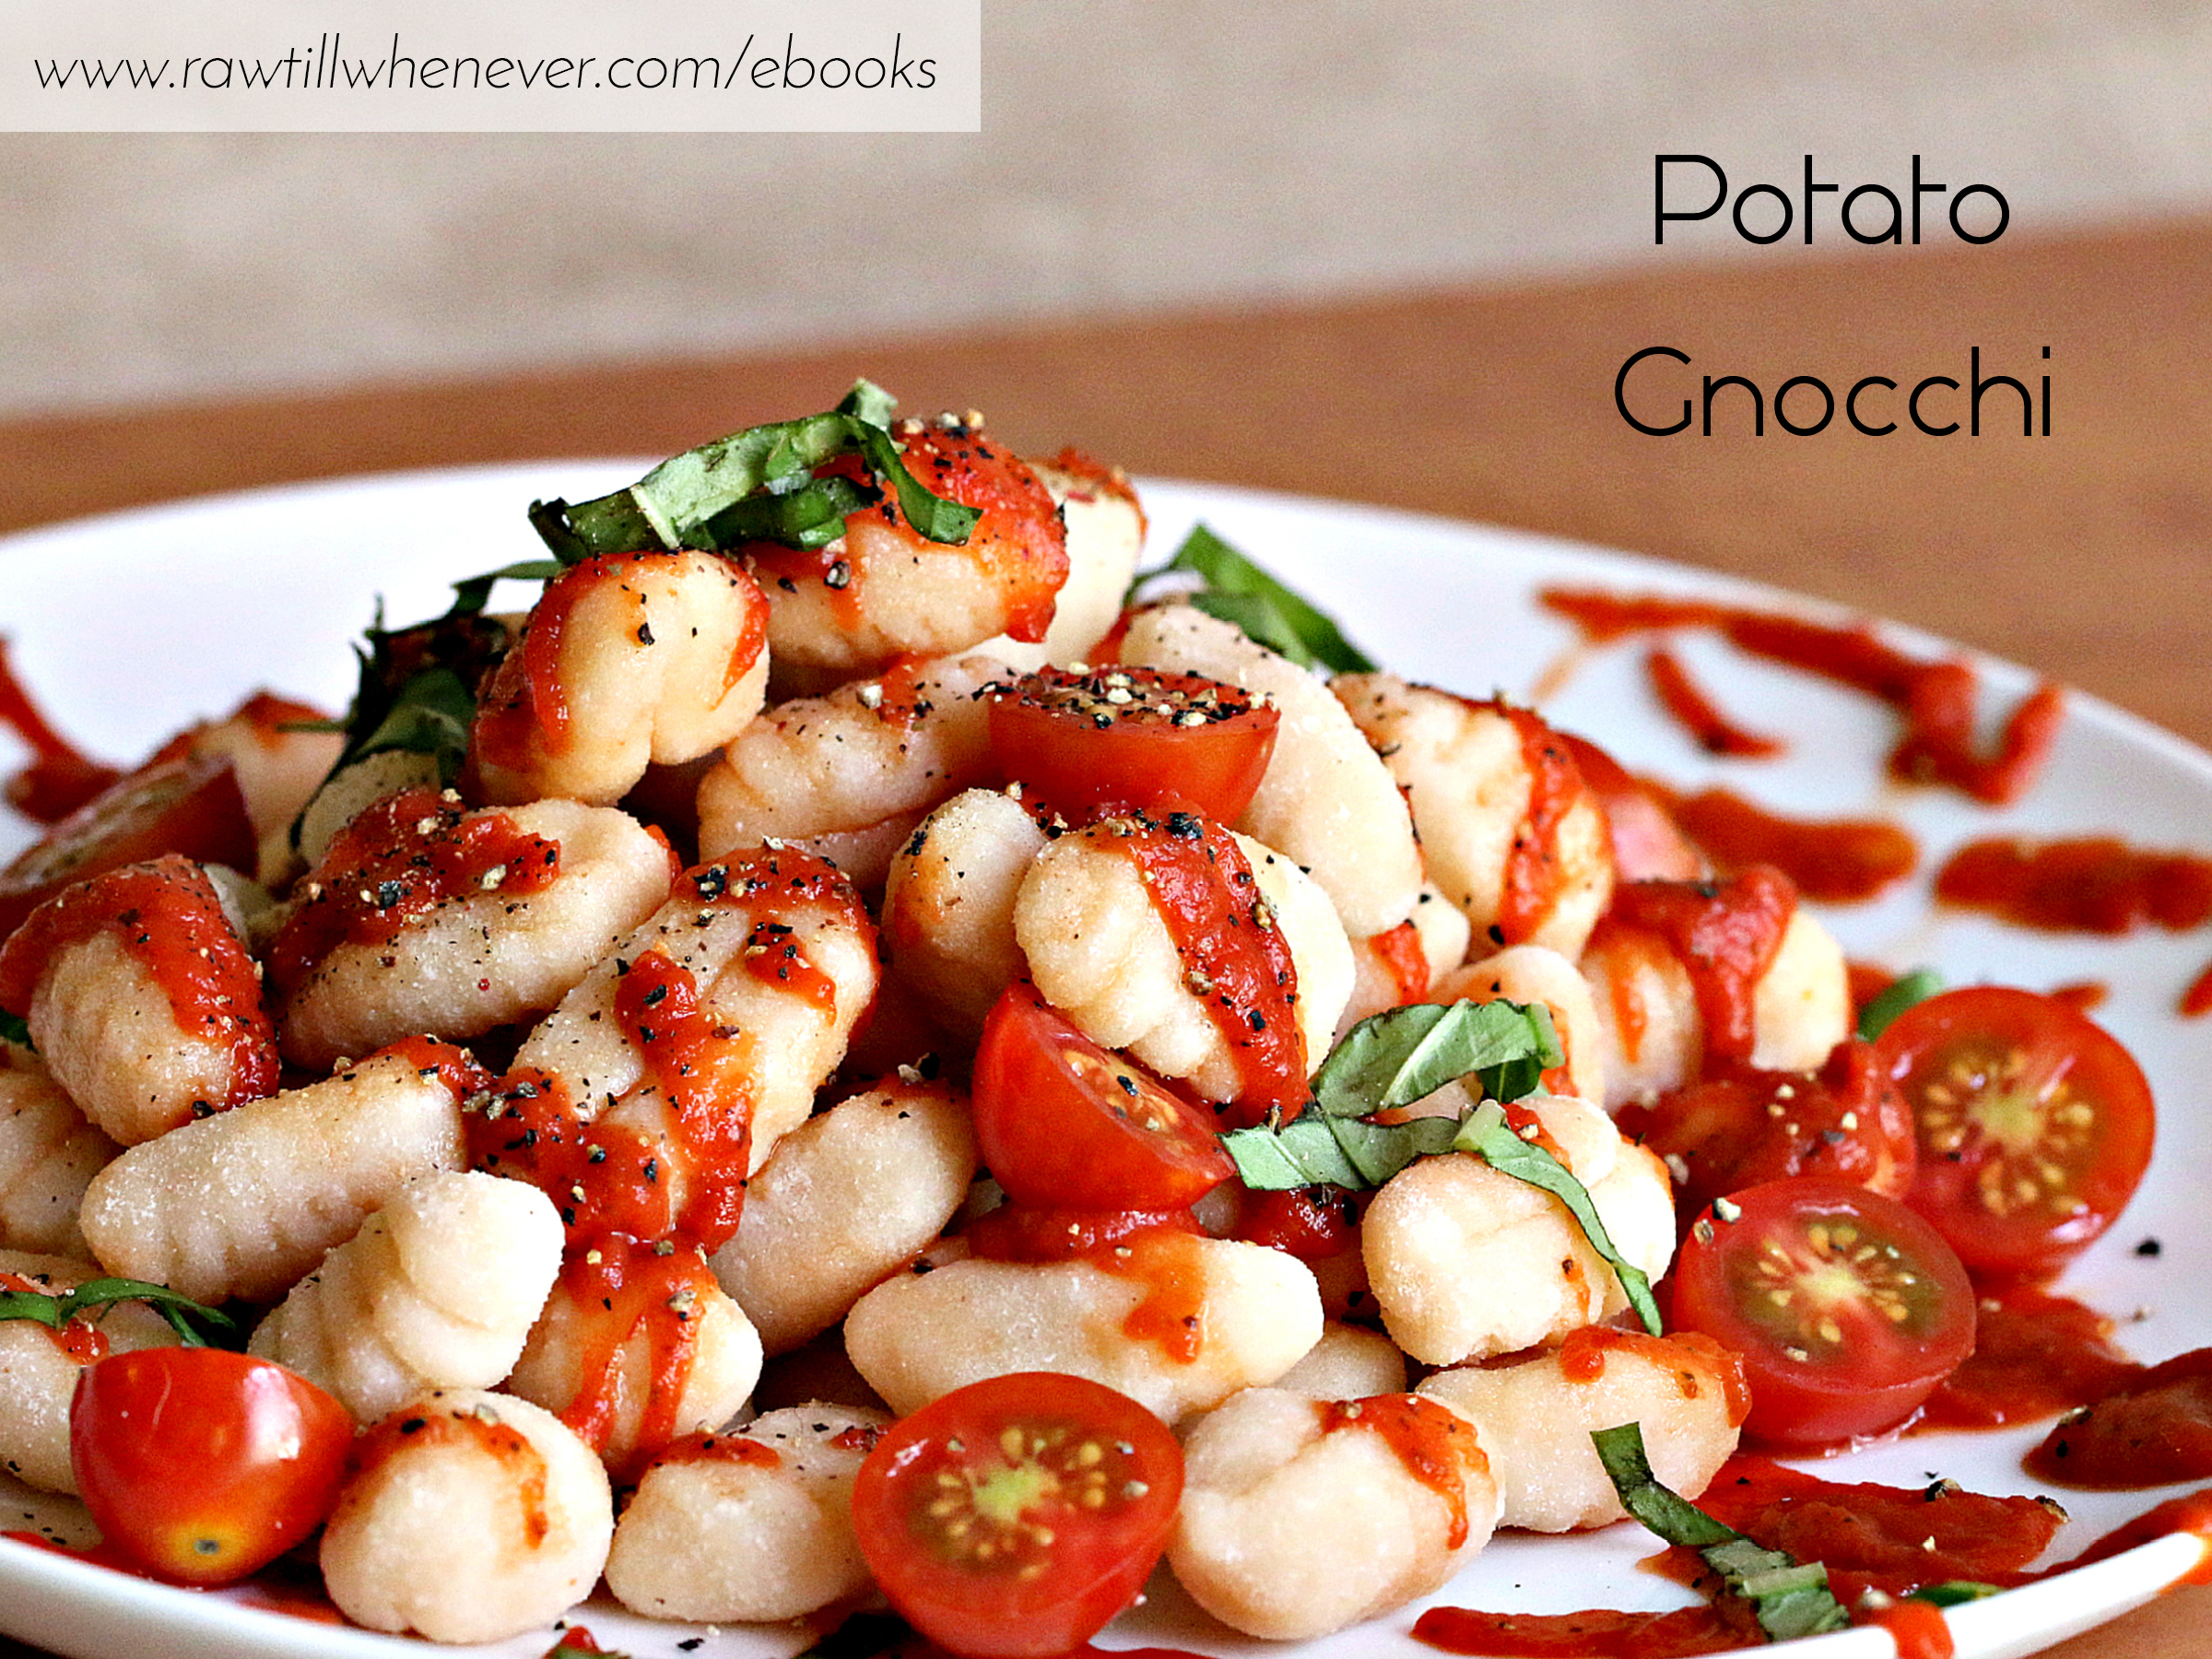 Potato gnocchi recipe featured from my best selling vegan recipe potato gnocchi recipe featured from my best selling vegan recipe book fullycooked forumfinder Choice Image